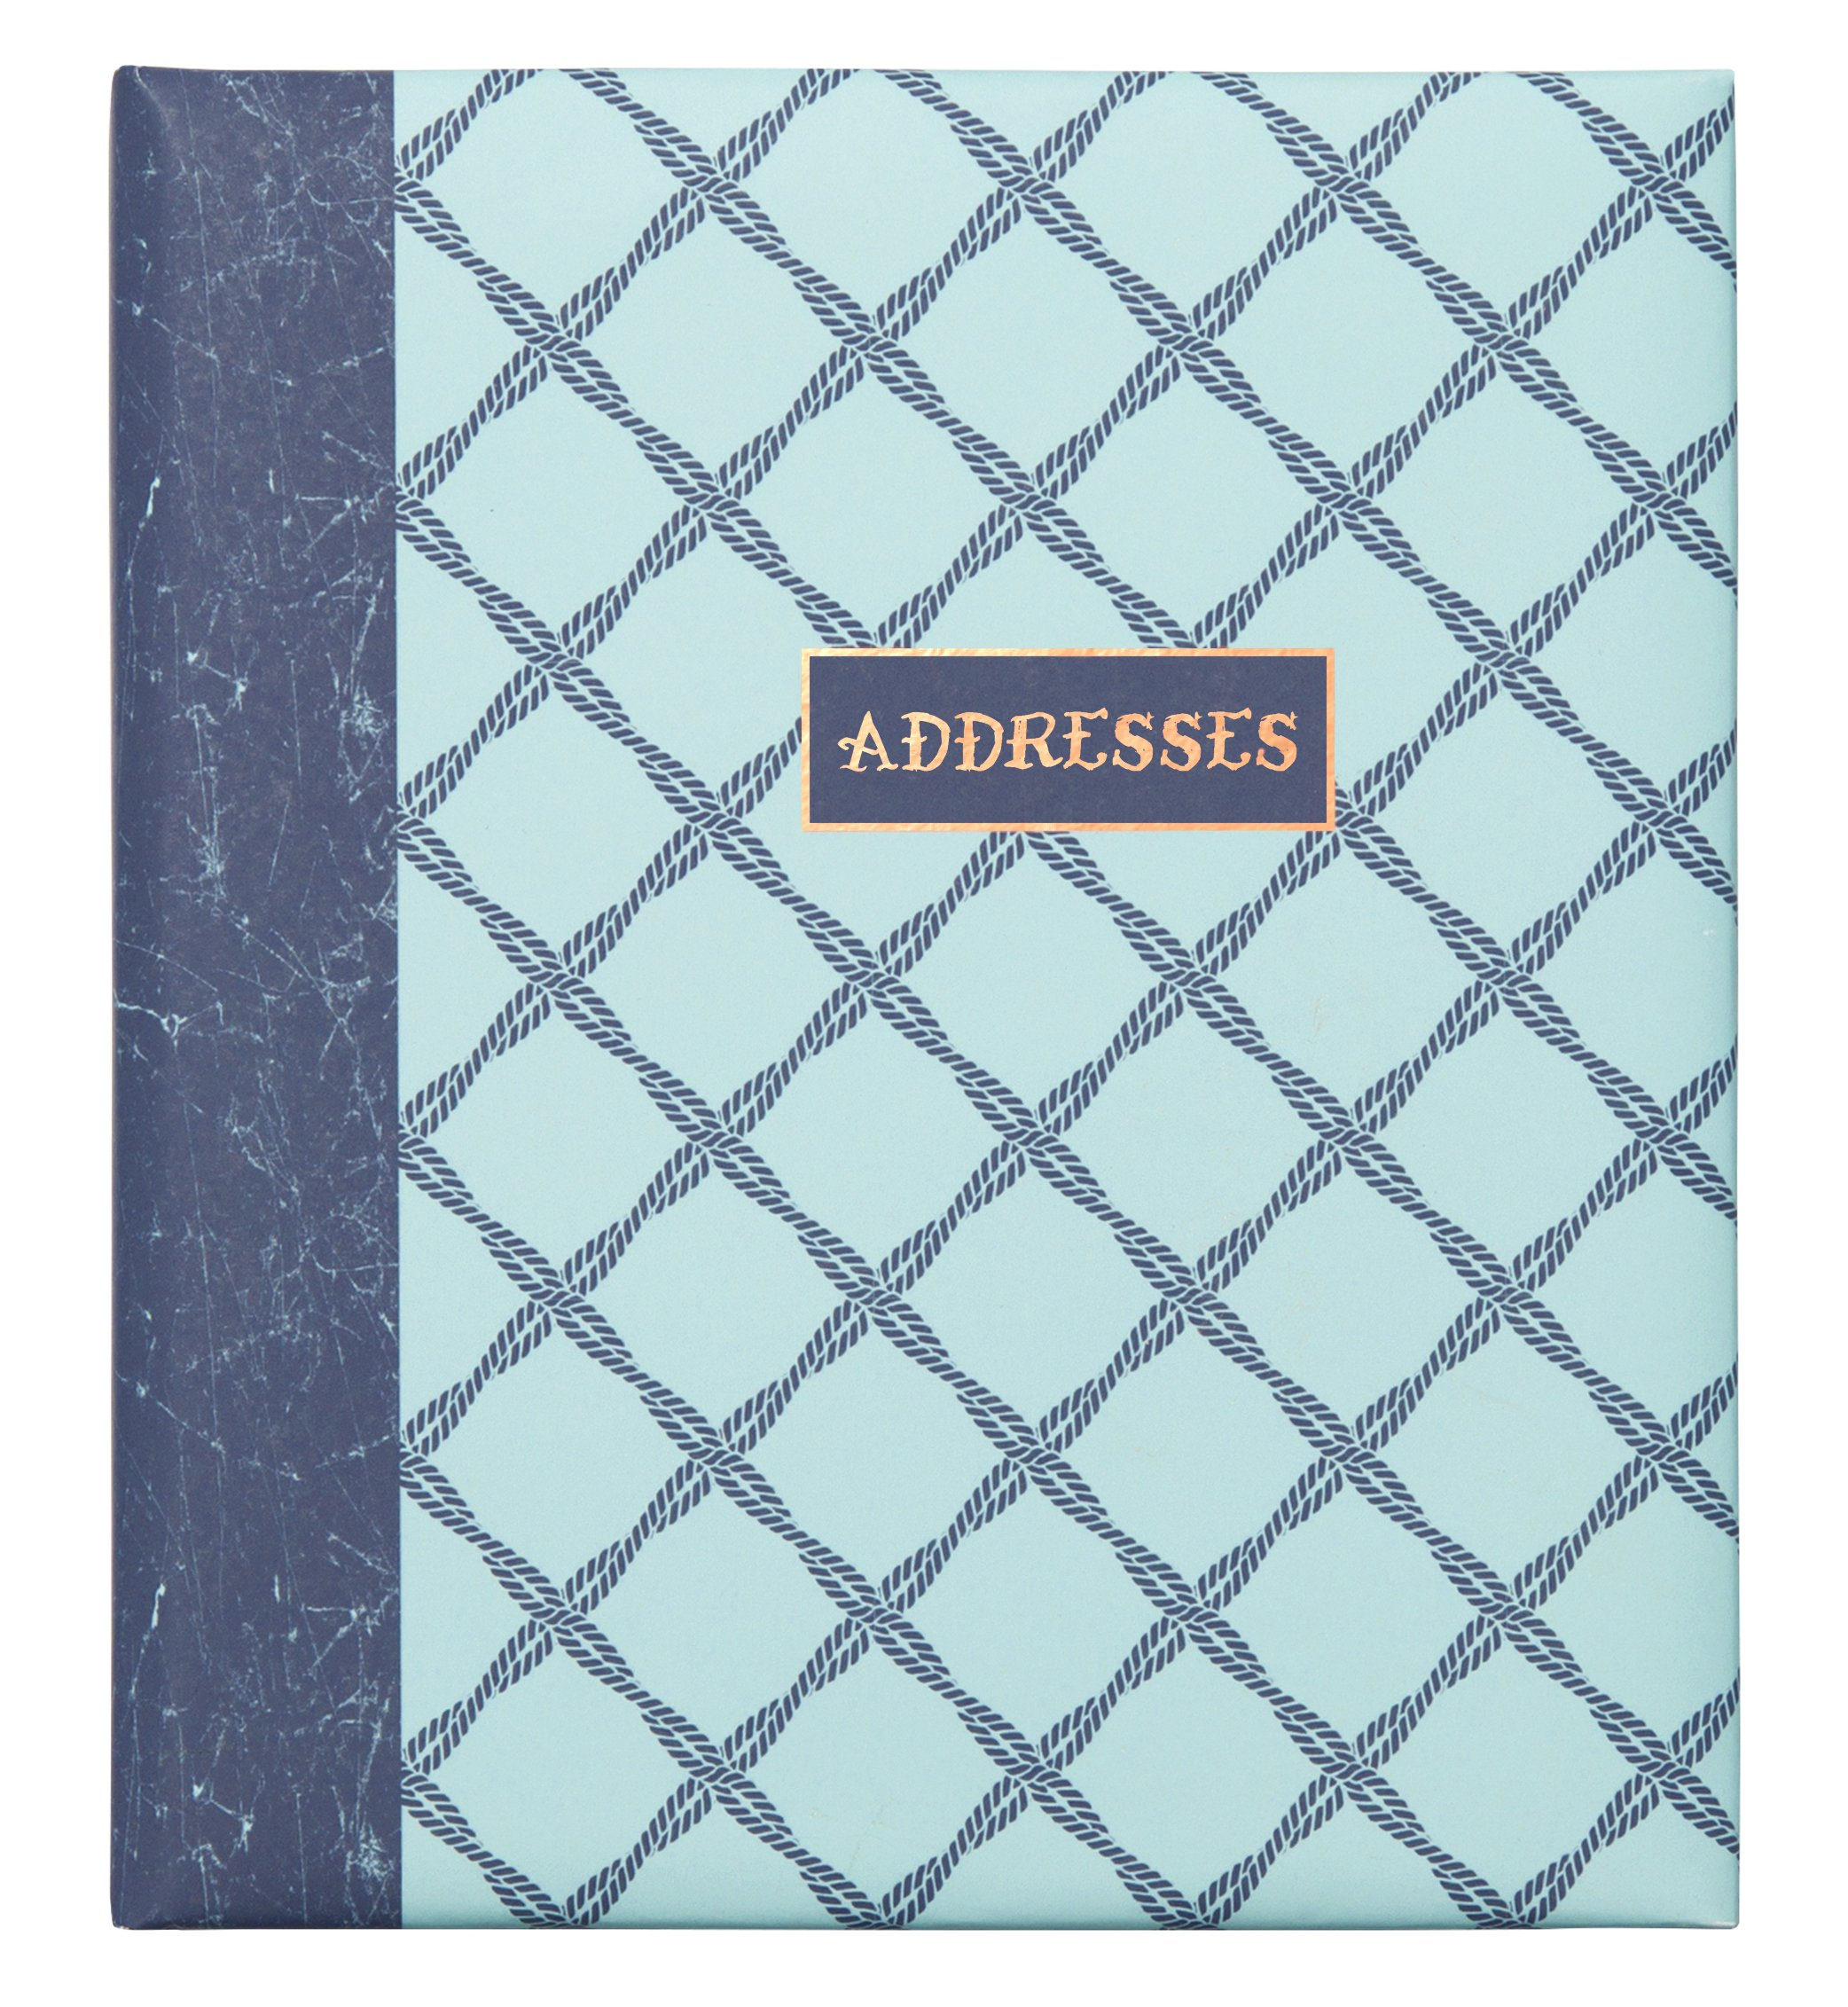 C.R. Gibson Refillable Address Book, 6-Ring Binder Format, Tabbed Dividers, 4 Entries Per Page, 440 Contacts, Measures 6.5'' x 7.25'' - Ocean's Depth by C.R. Gibson (Image #1)